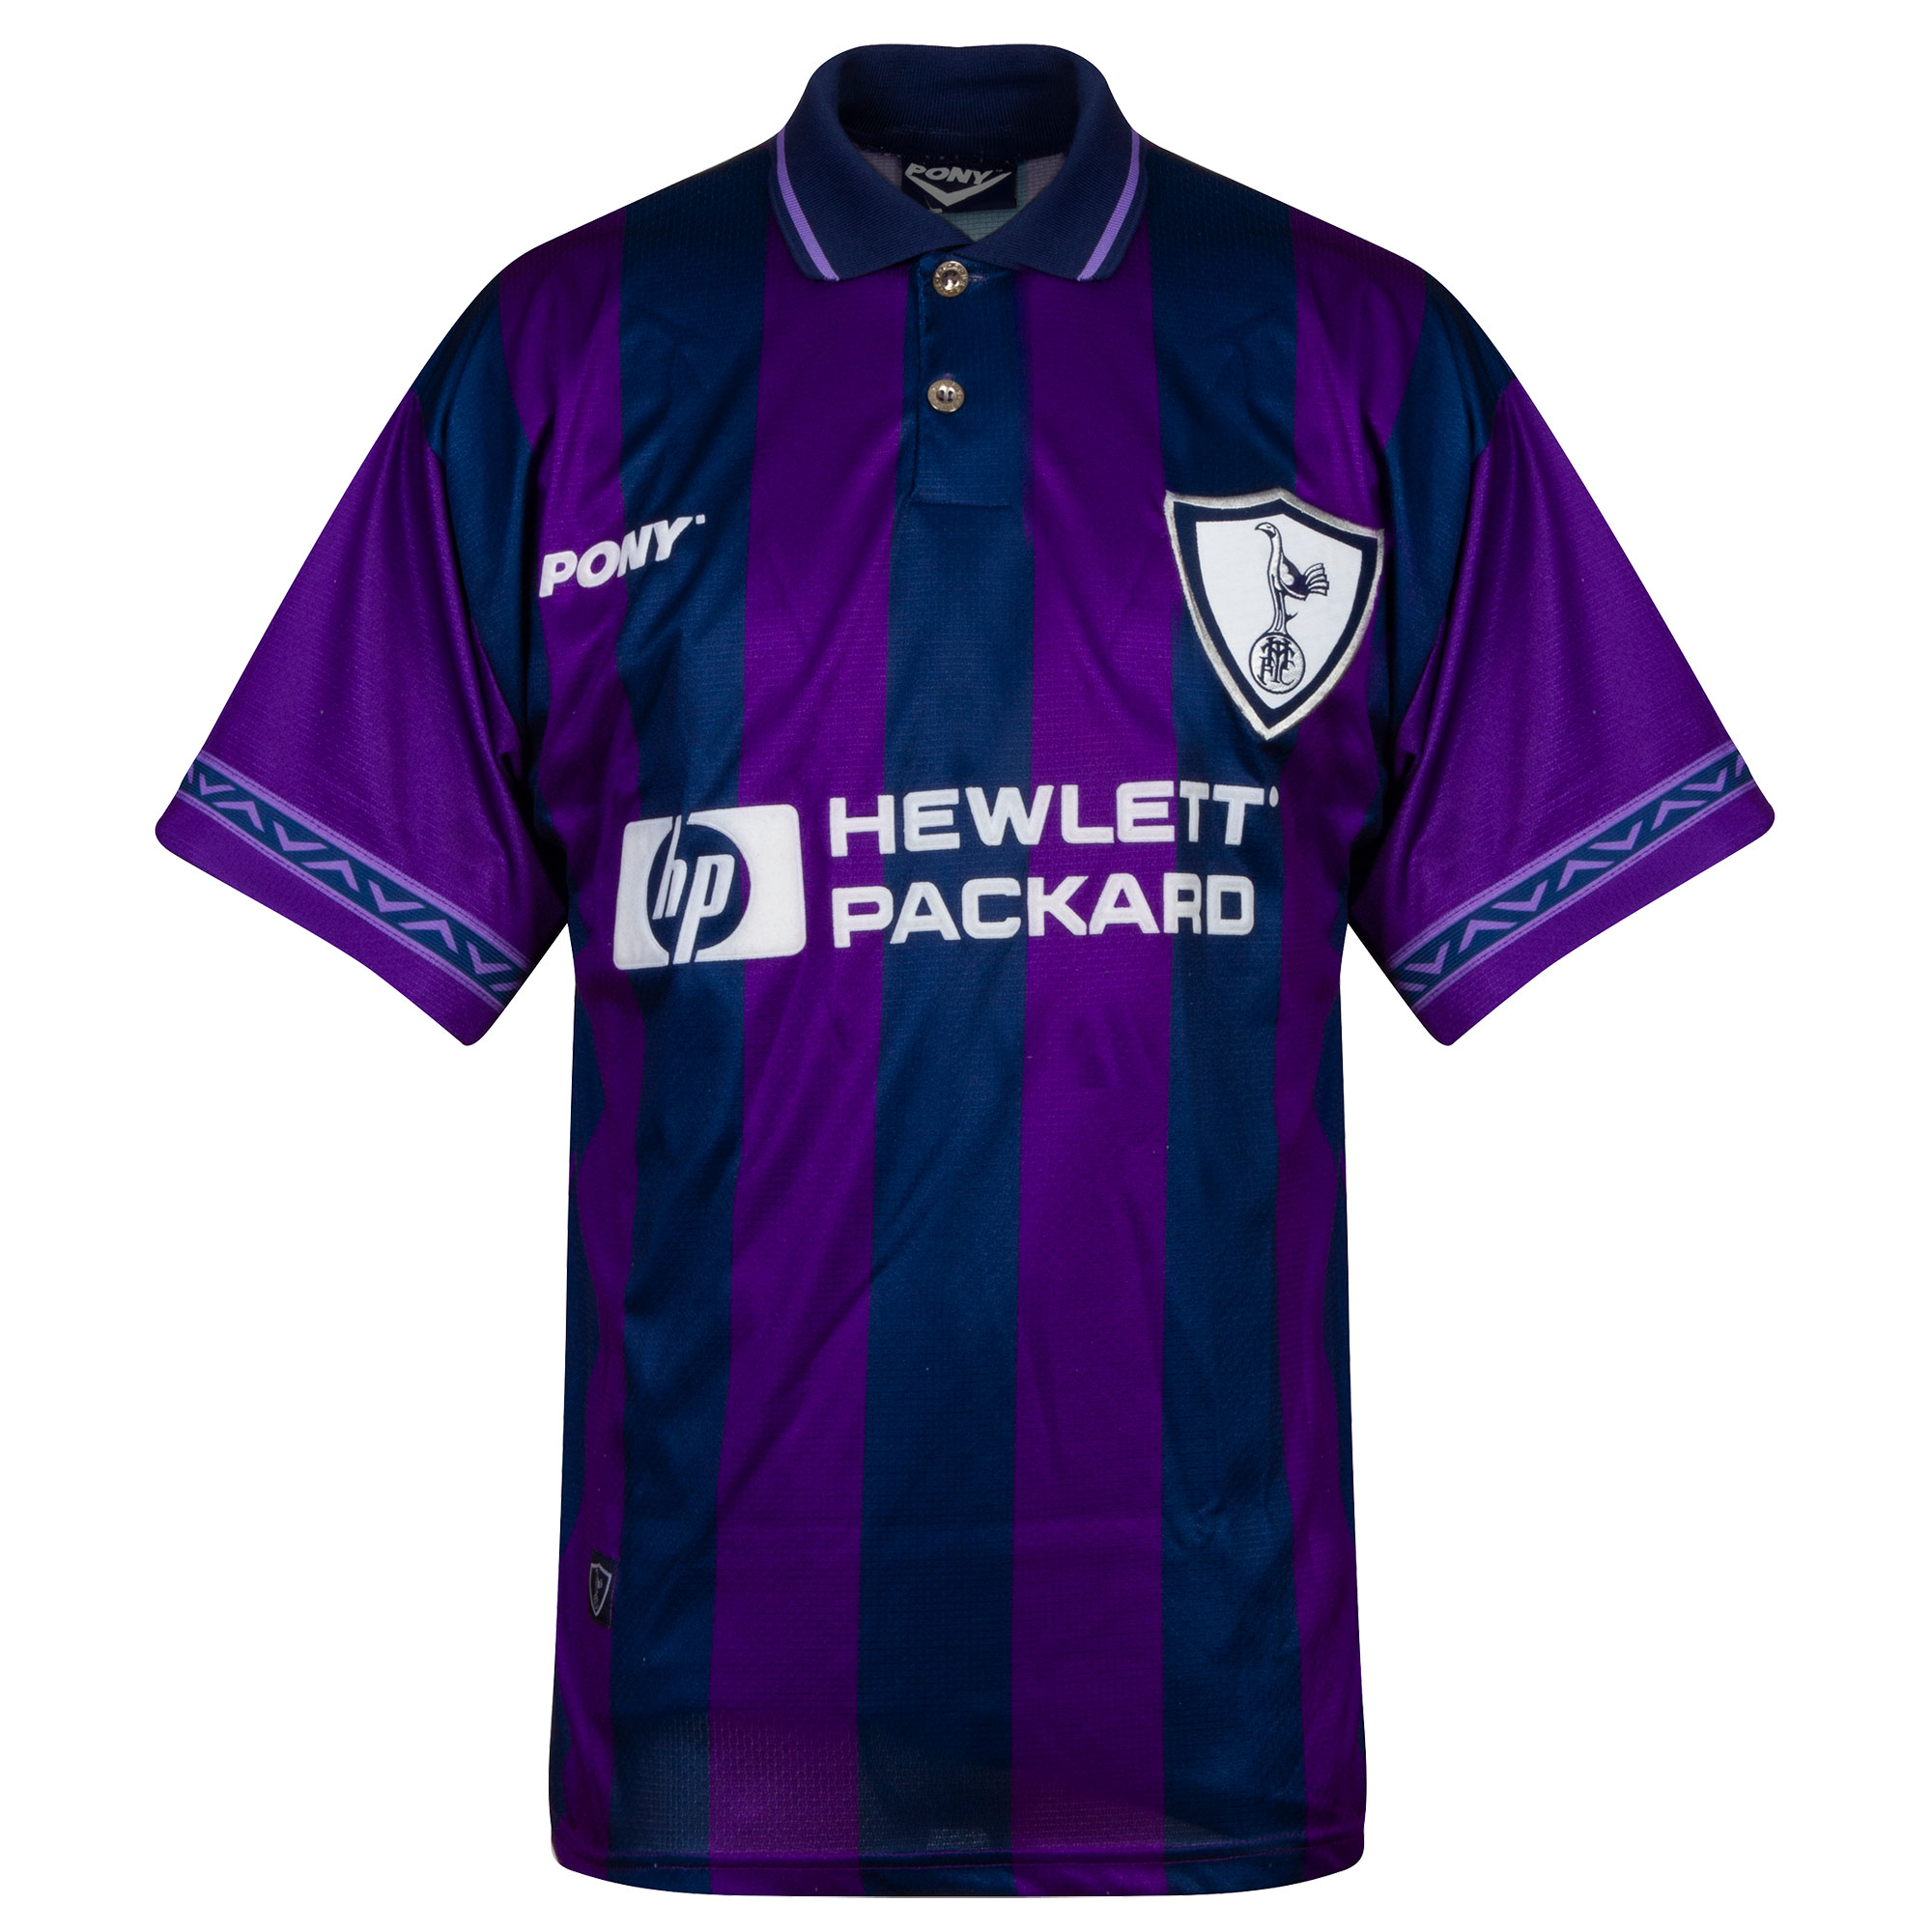 Umbro Tottenham Hotspur Away 1995-1996 Shirt - USED Condition (Excellent) - Size Medium